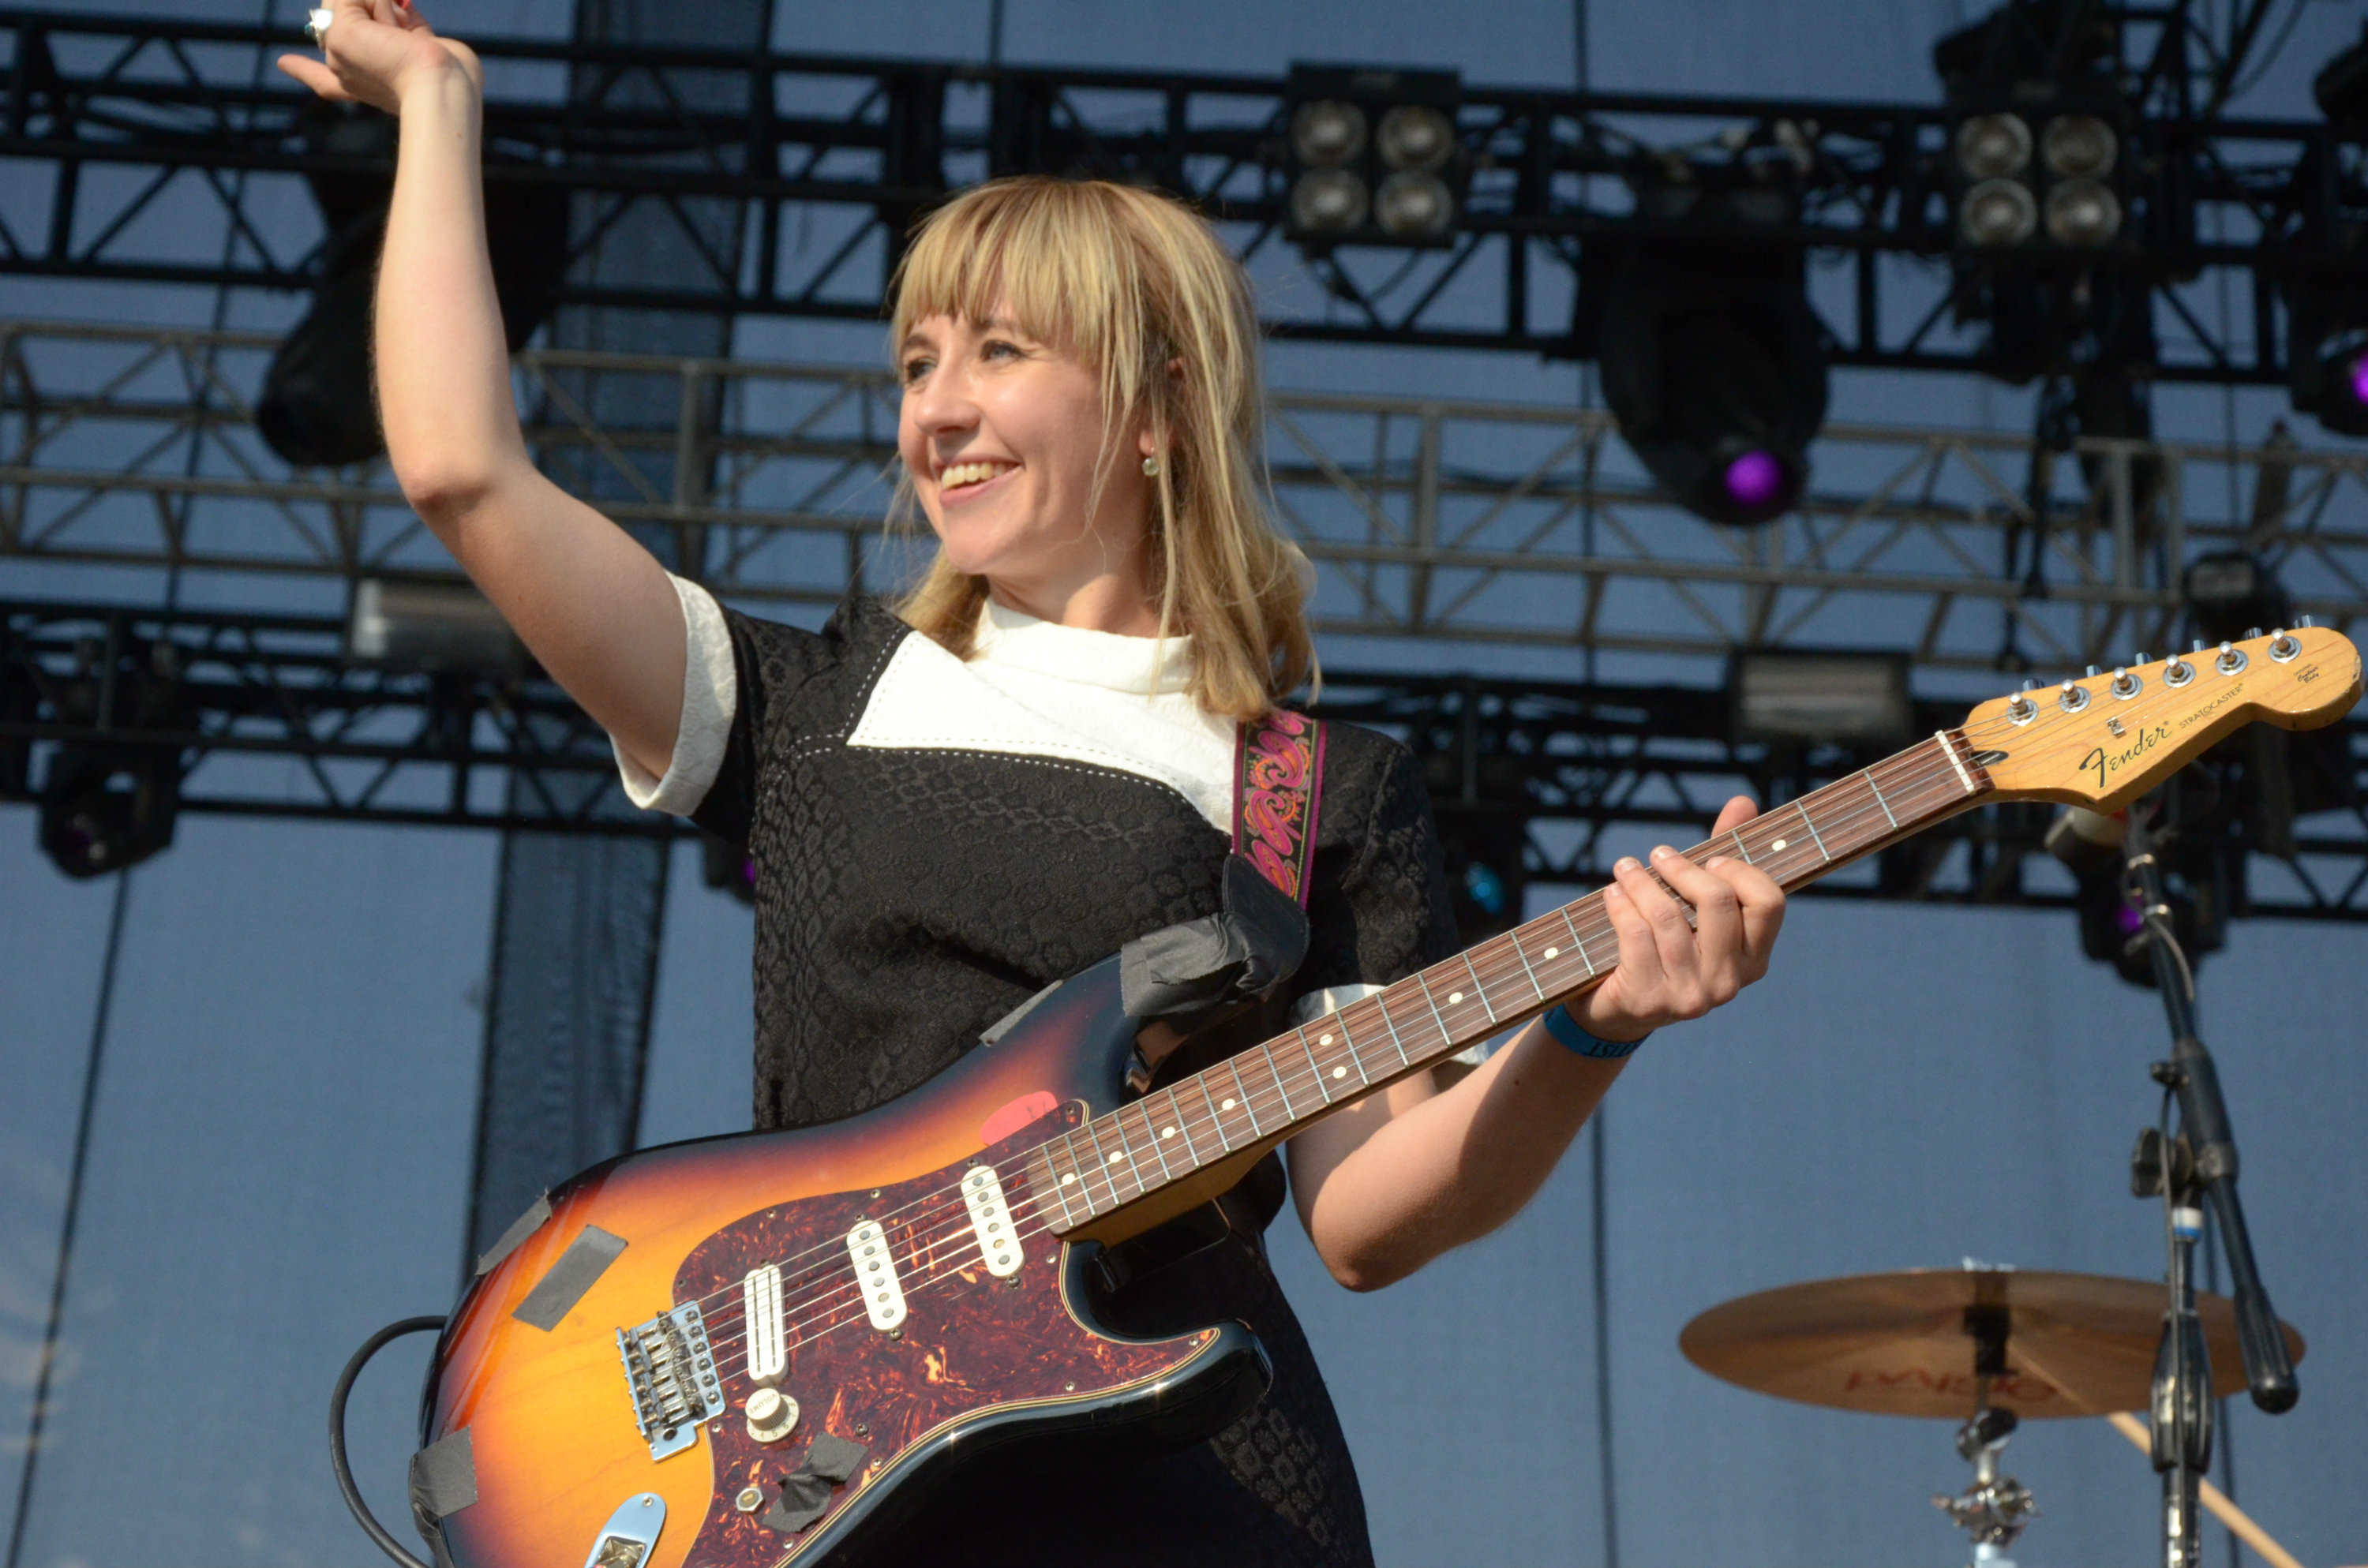 Photo: The Joy Formidable at Riot Fest 2015